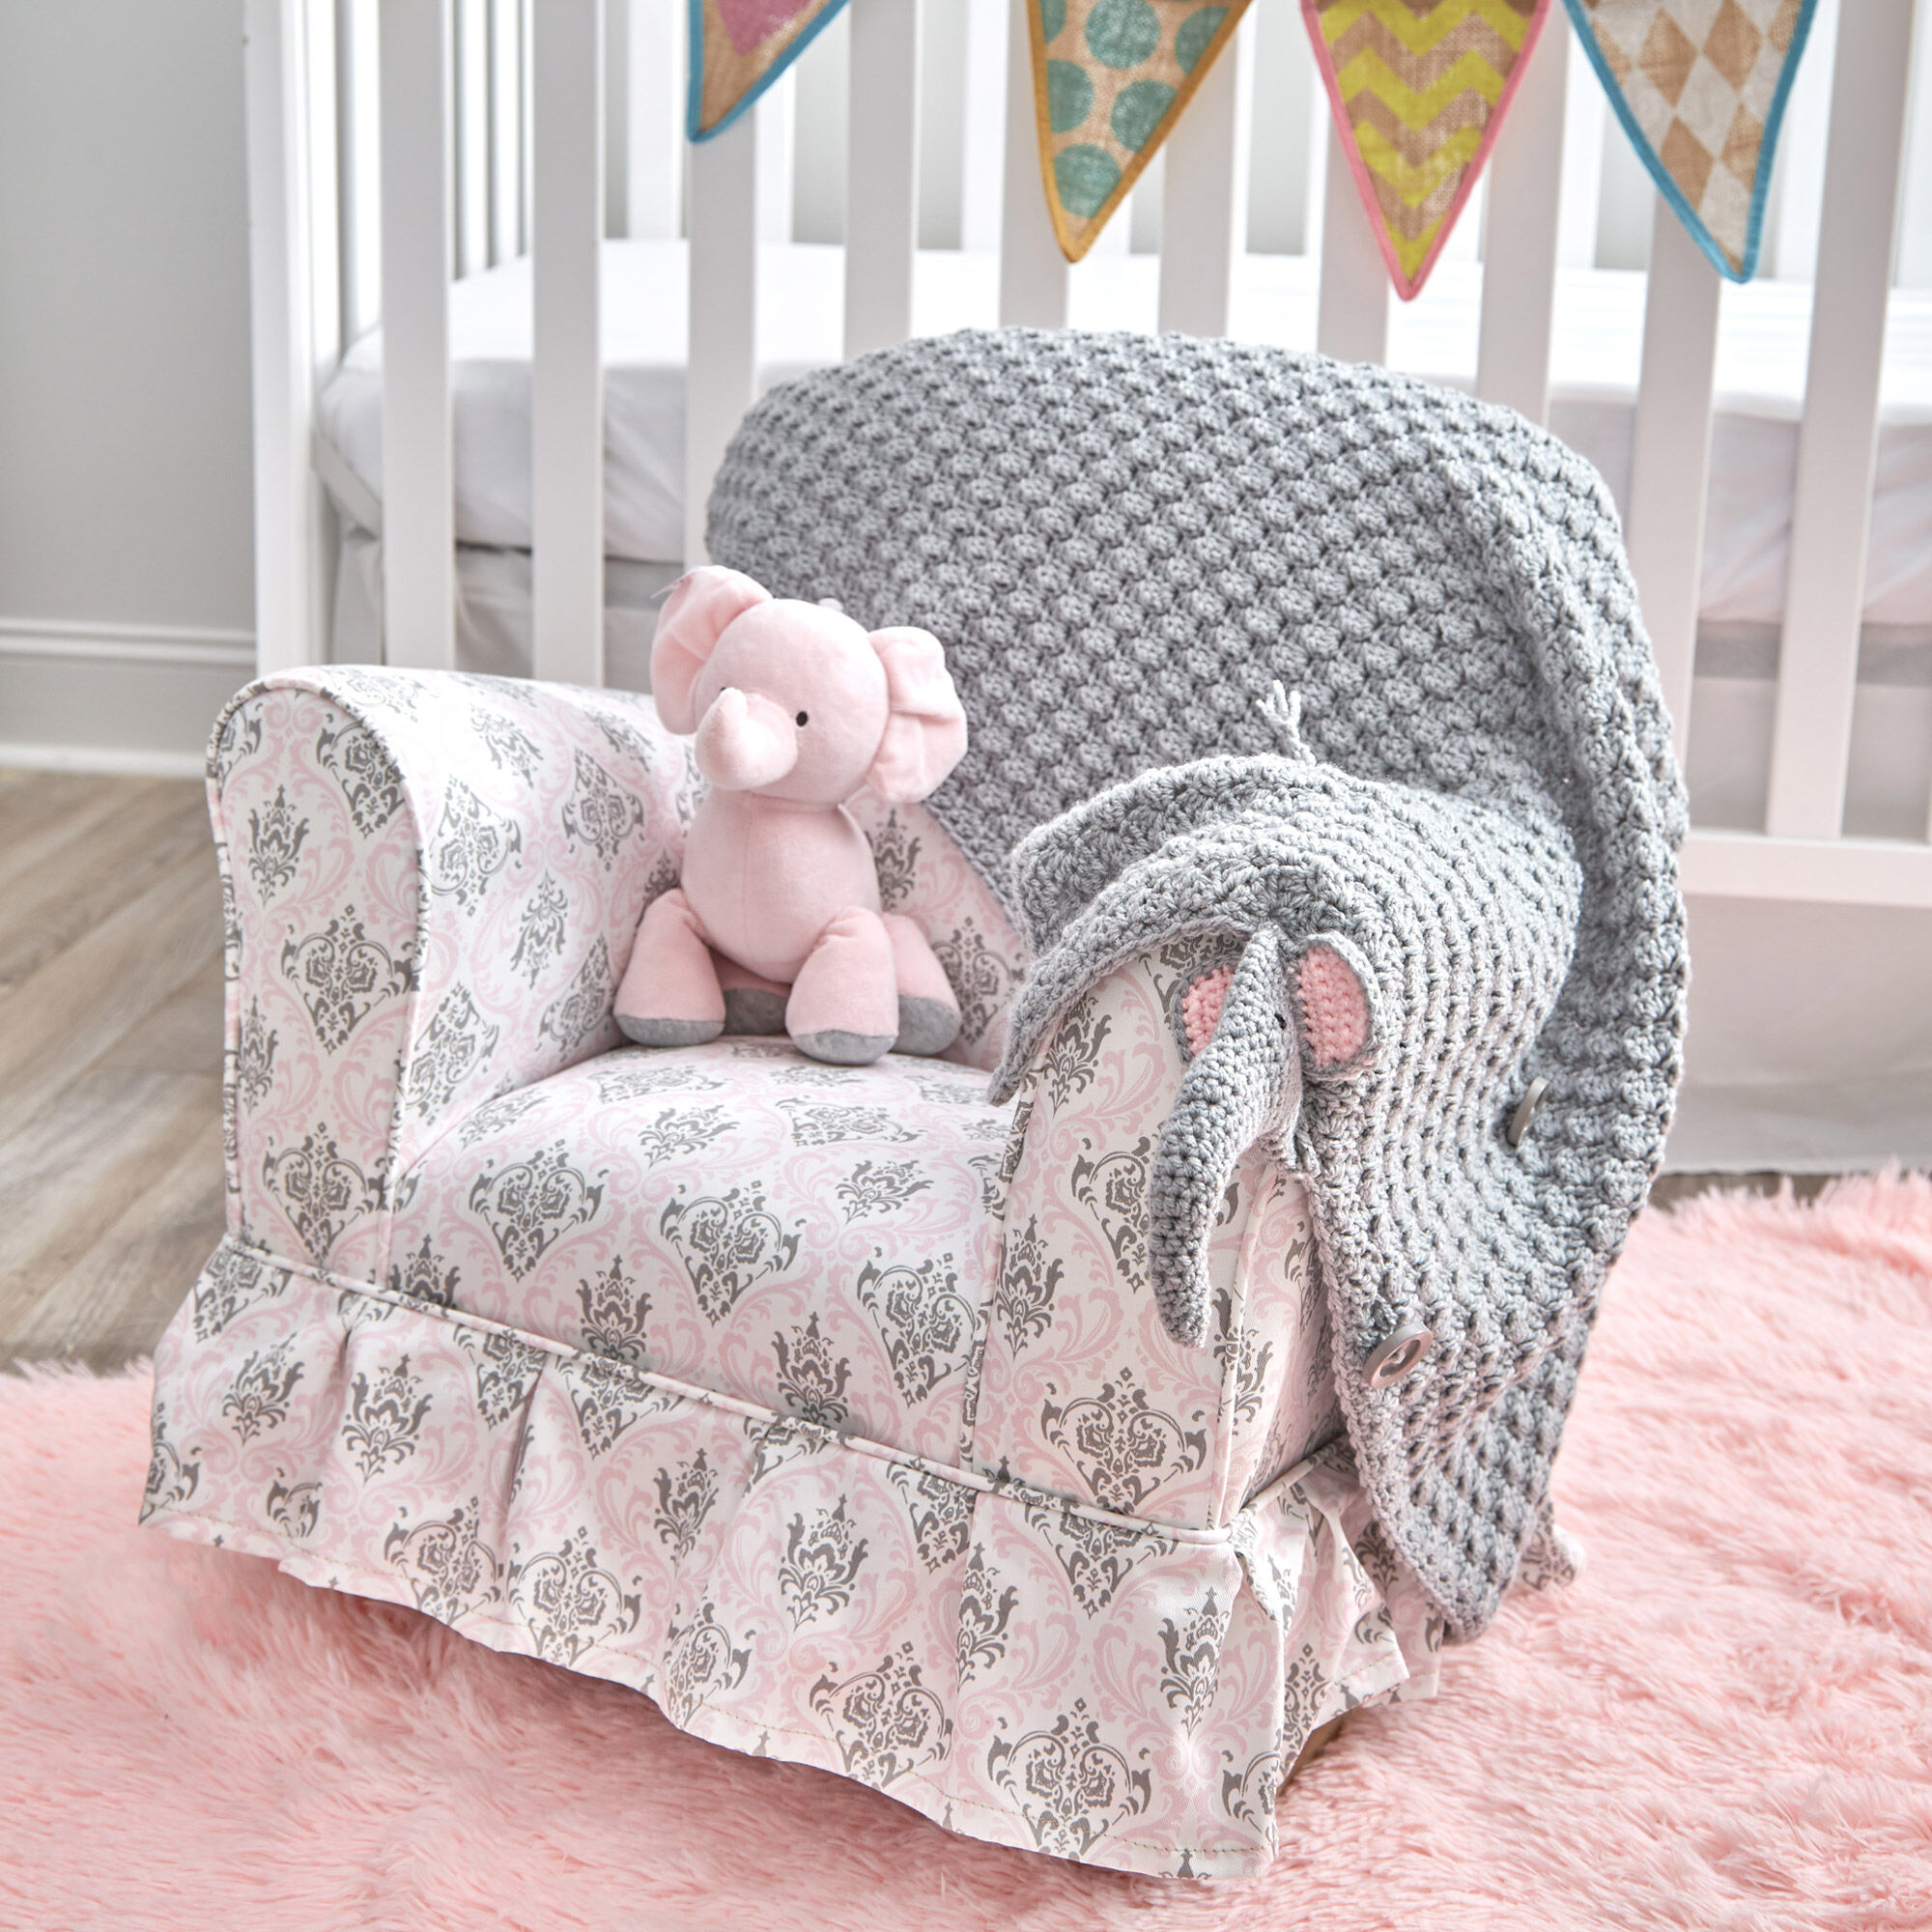 Filet Elephant Blanket Crochet Pattern - The Lavender Chair | 2000x2000